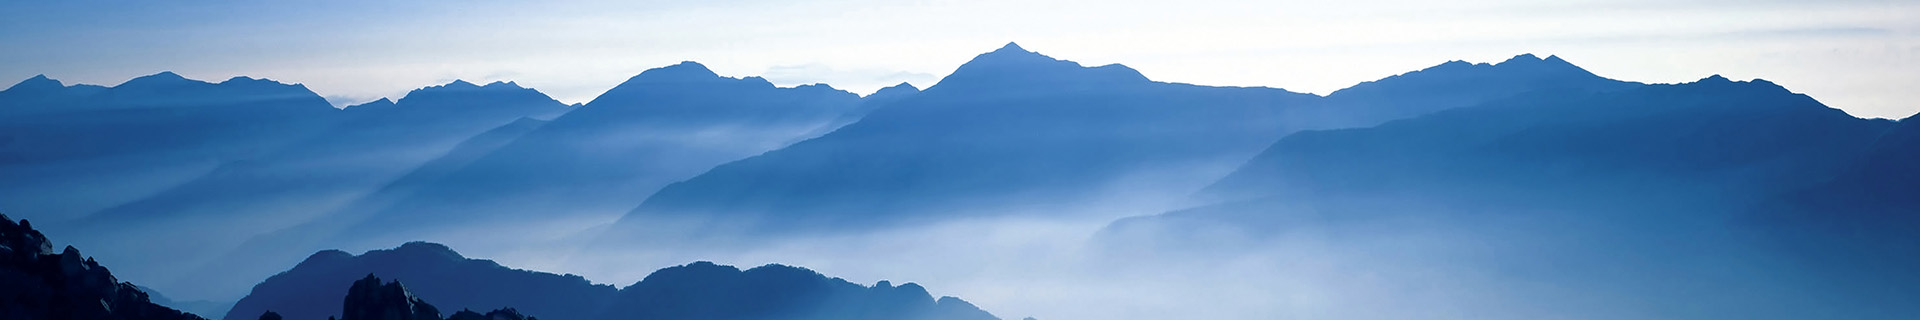 Early morning overview of a mountain range in a cloud